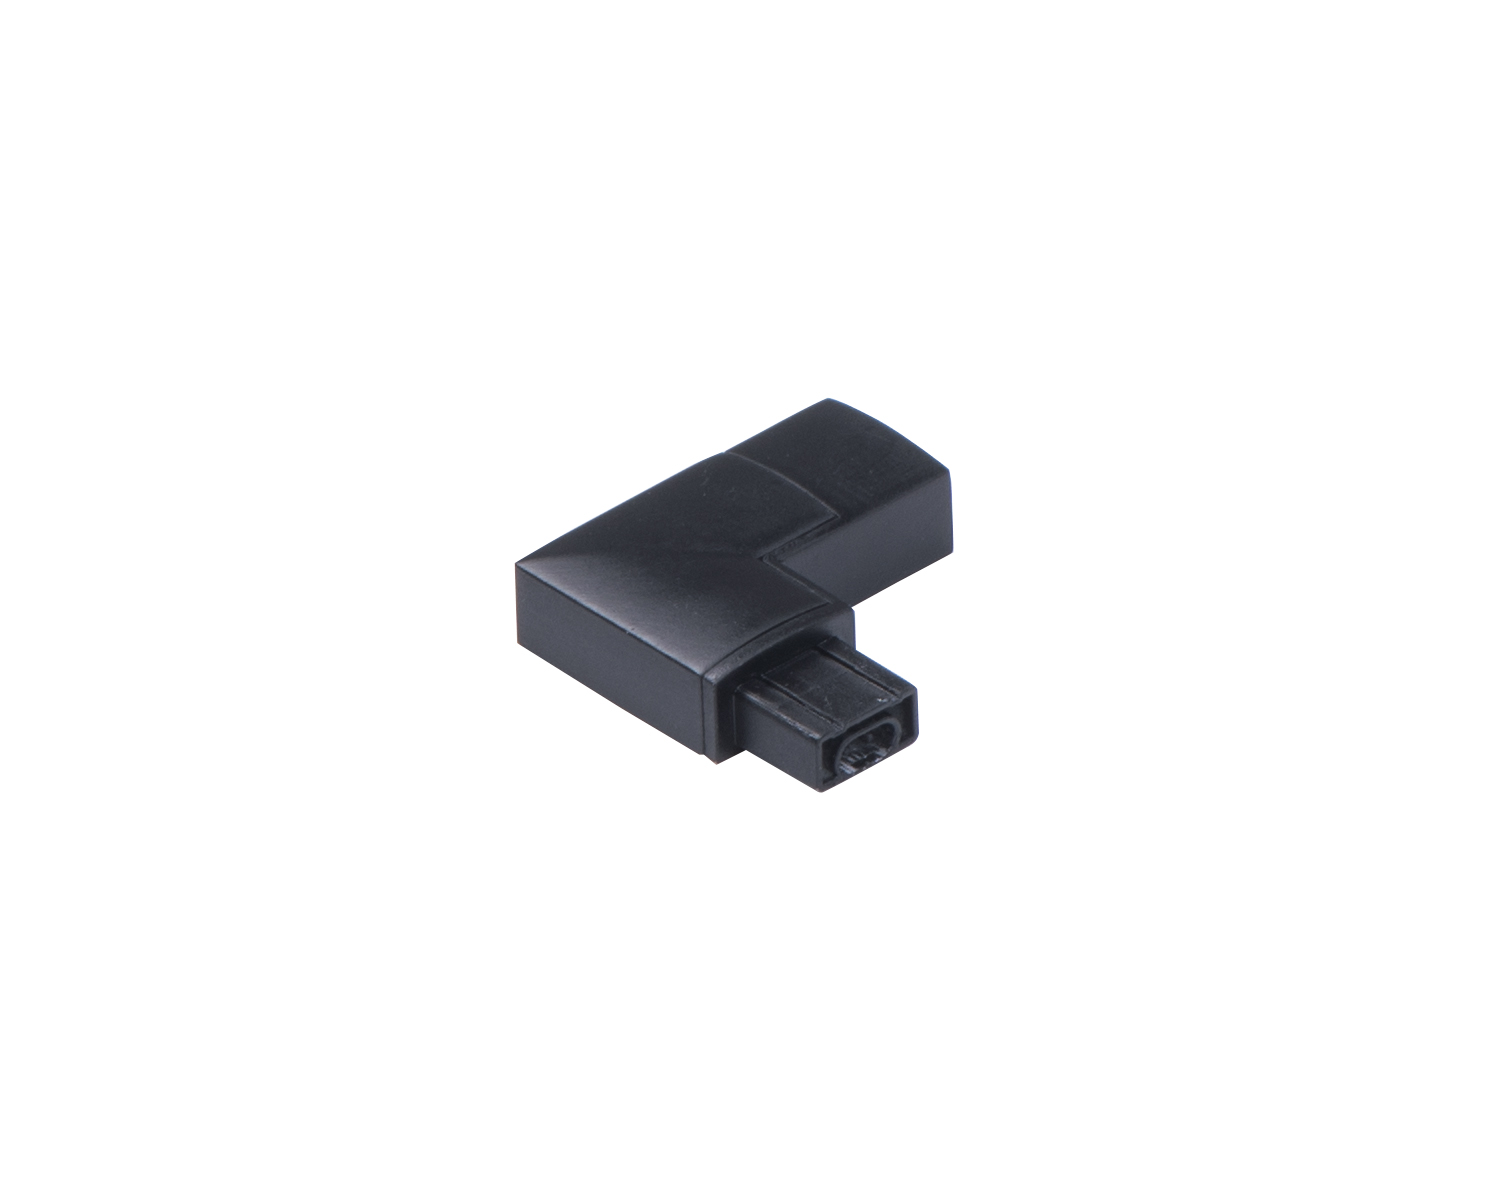 90 Degree Connector Right from the CounterMax MX L 24 SS collection by Maxim 89831BK